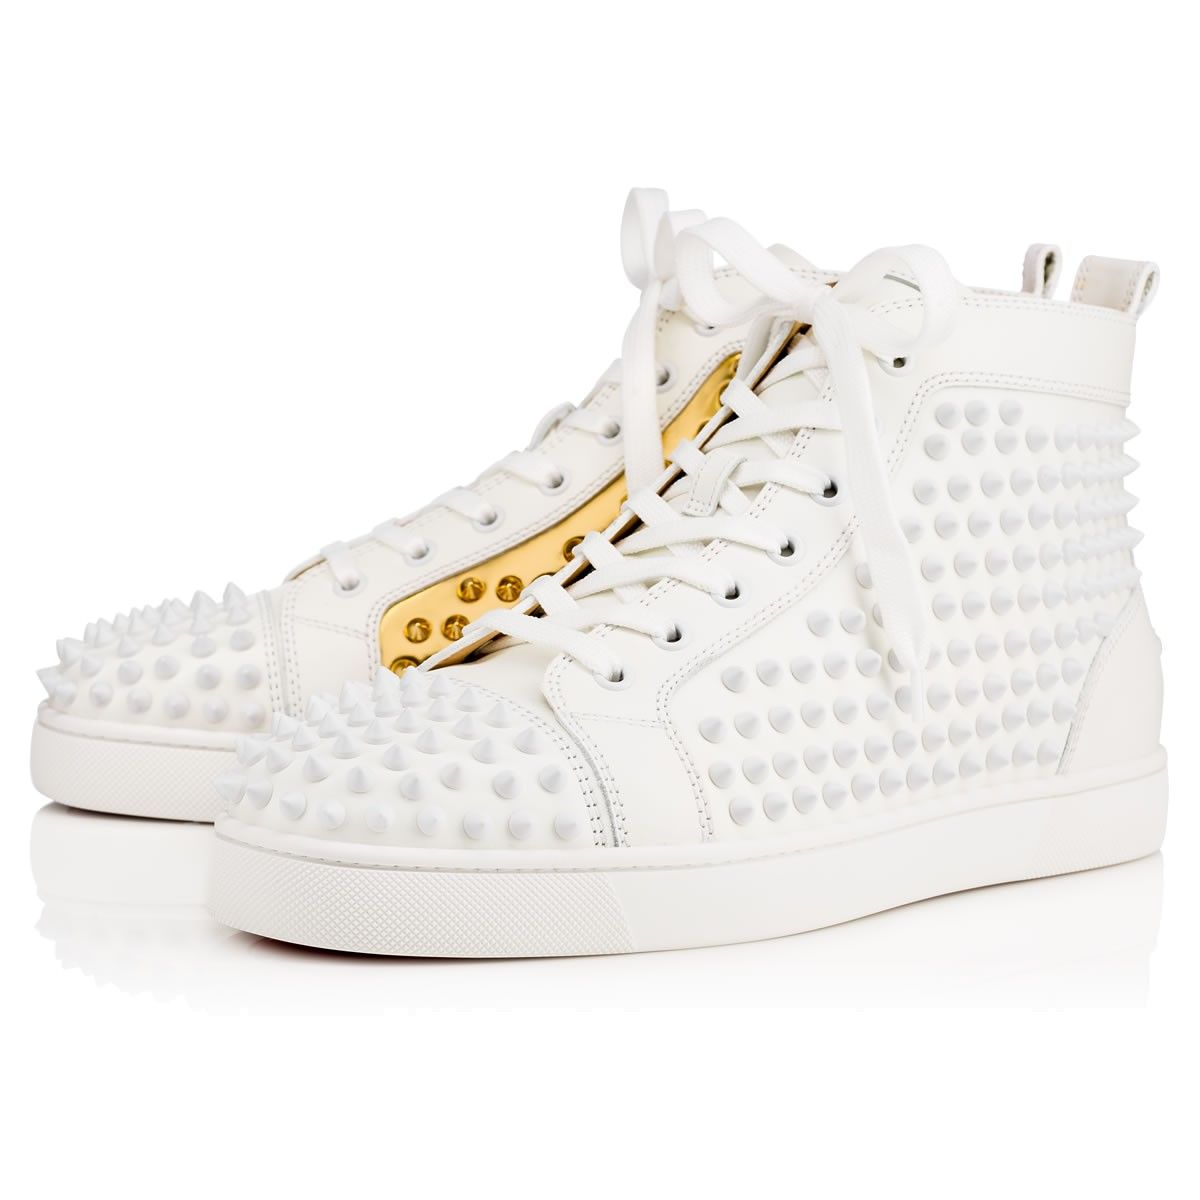 CHRISTIAN LOUBOUTIN Louis Spikes Men s Flat Latte Gold Leather - Men Shoes  - Christian Louboutin.  christianlouboutin  shoes   d81eb6b378e5